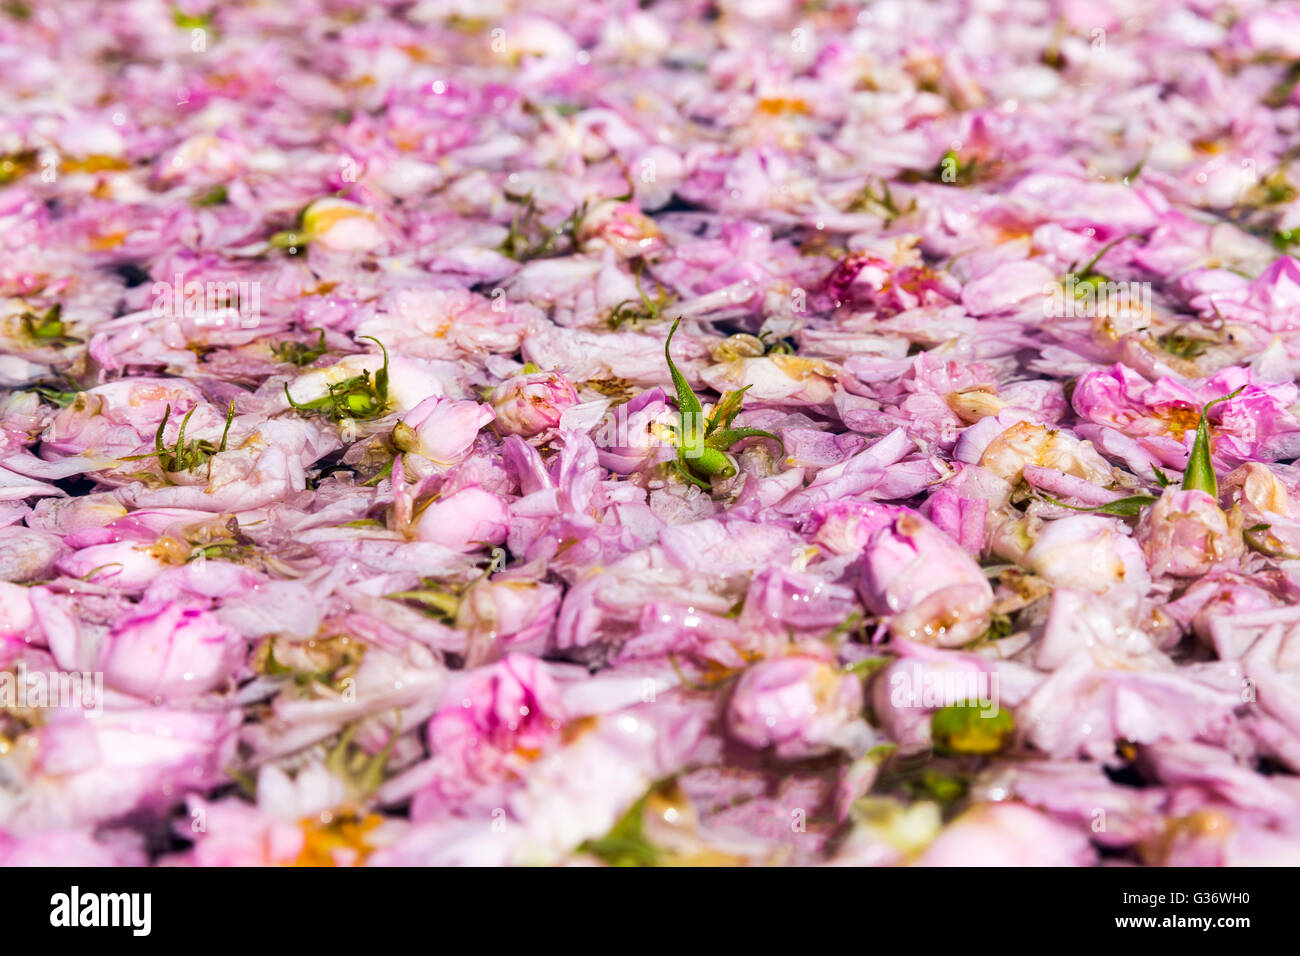 Pink rose blossom in pot-still during the rose picking season in Kazanlak, Bulgaria. - Stock Image